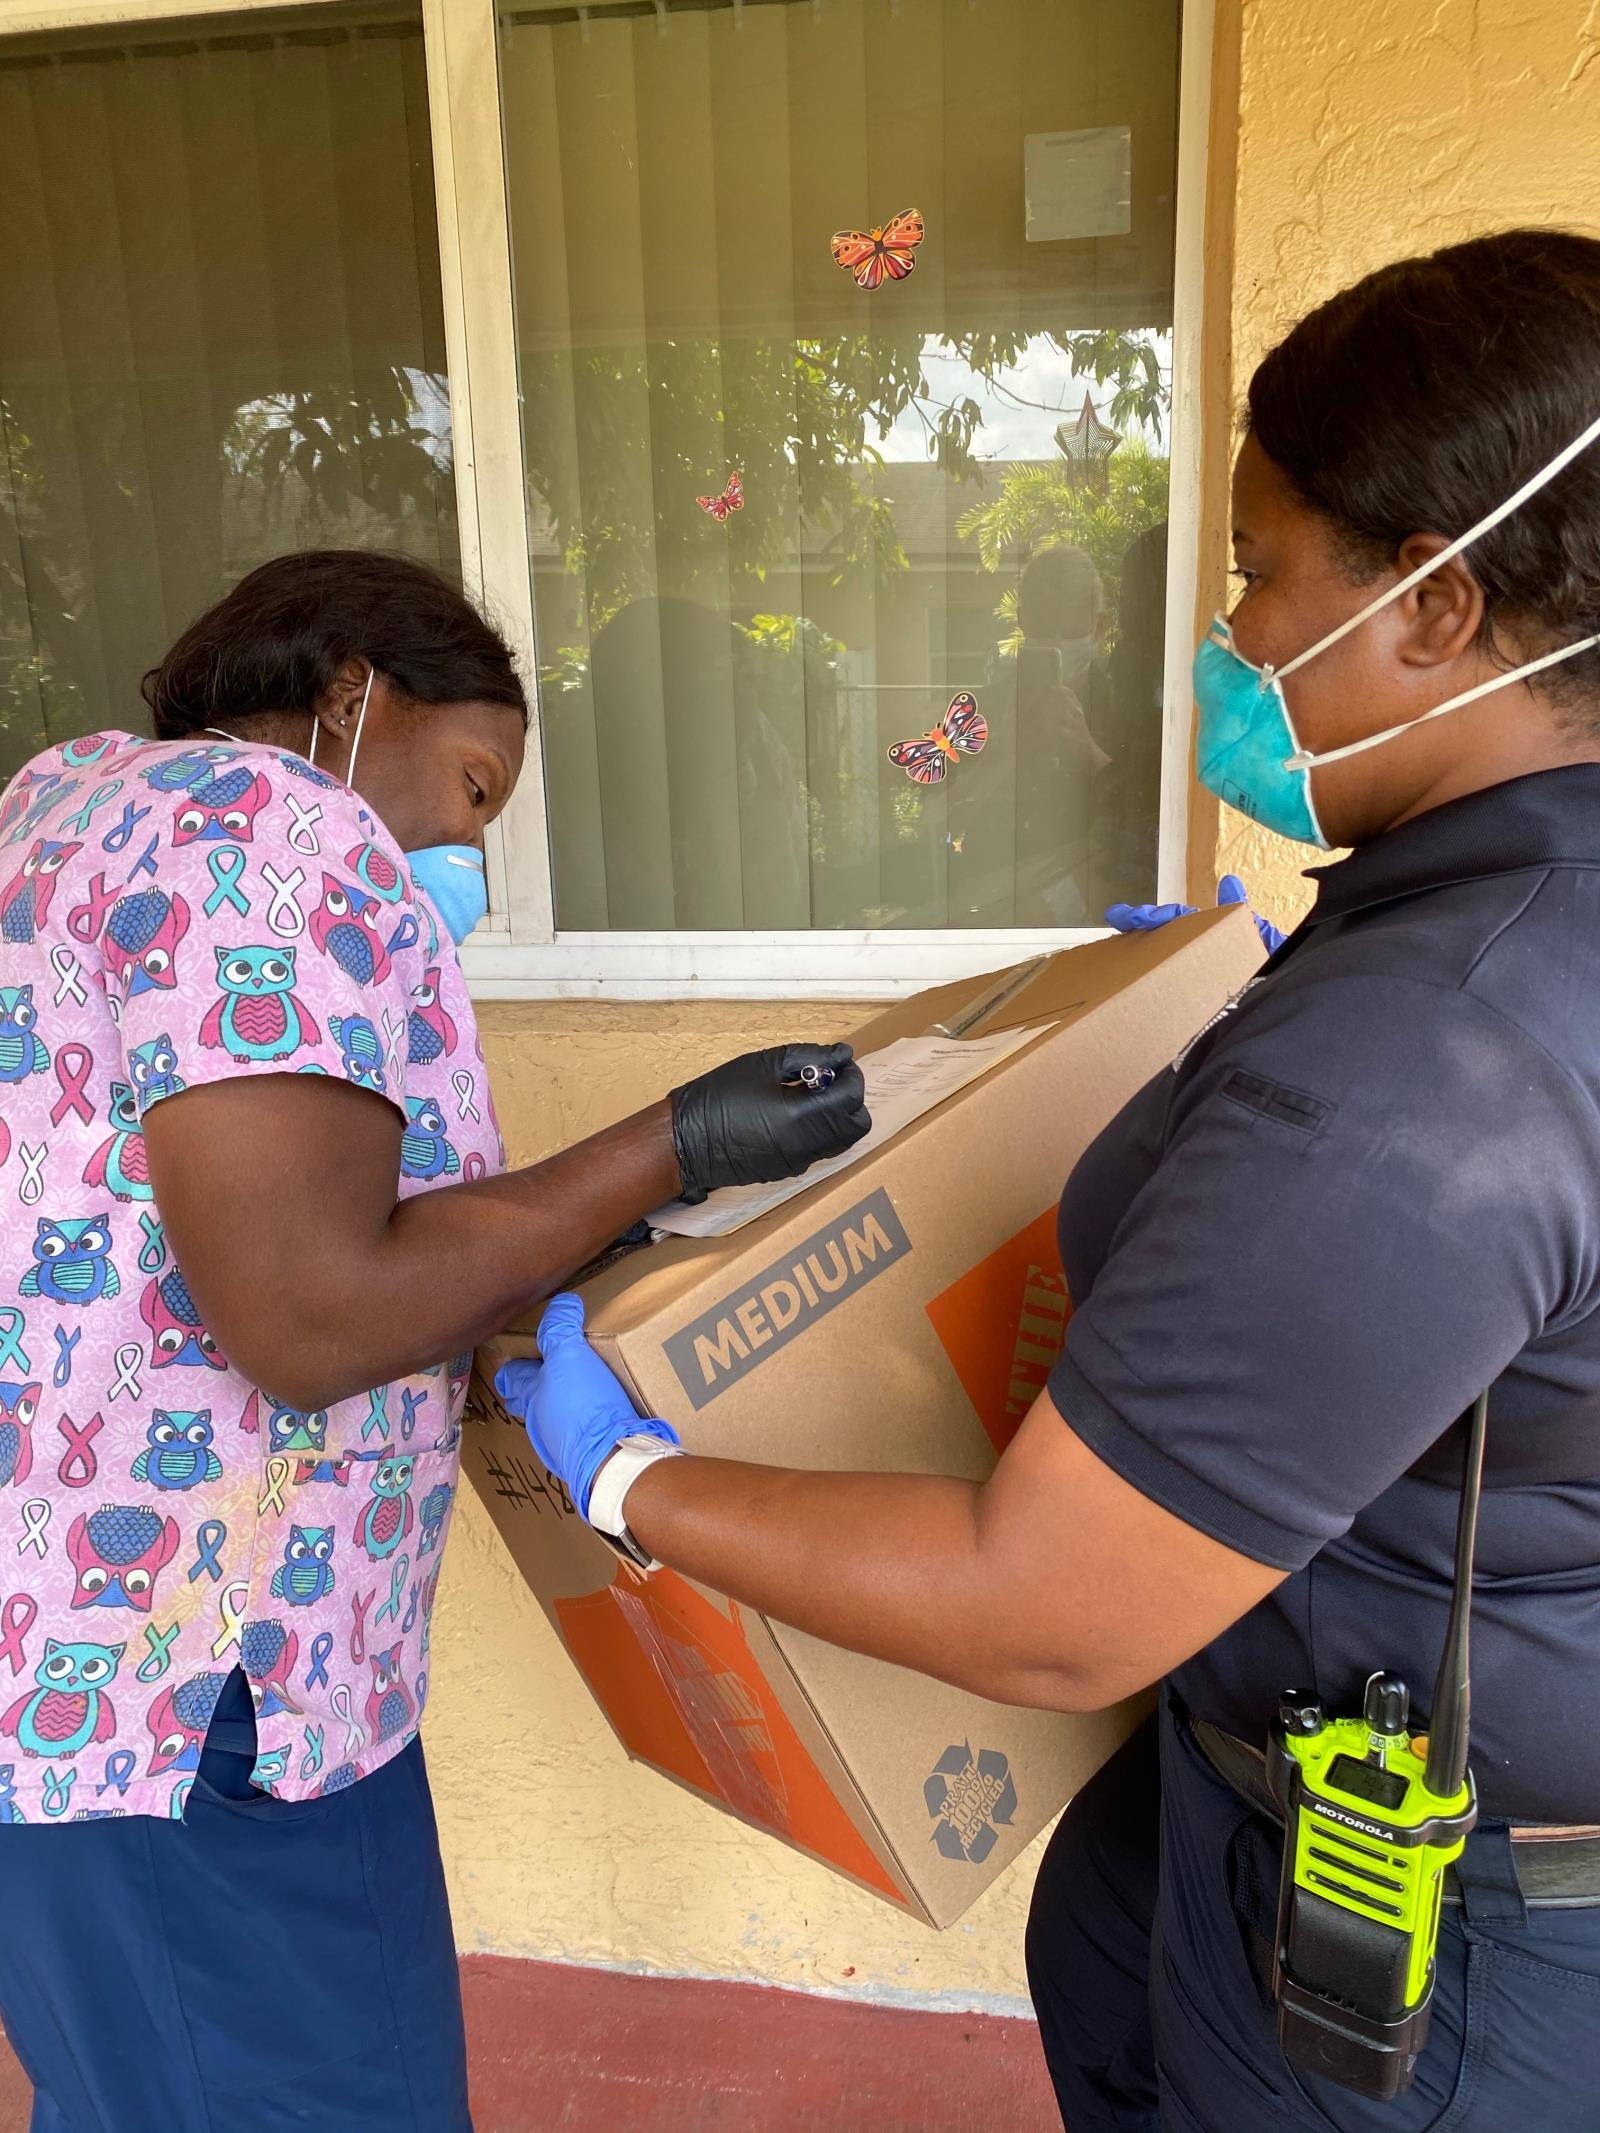 Fire Inspector Sheniqua Johnson delivered supplies to Morning Breeze Assisted Living Facilities